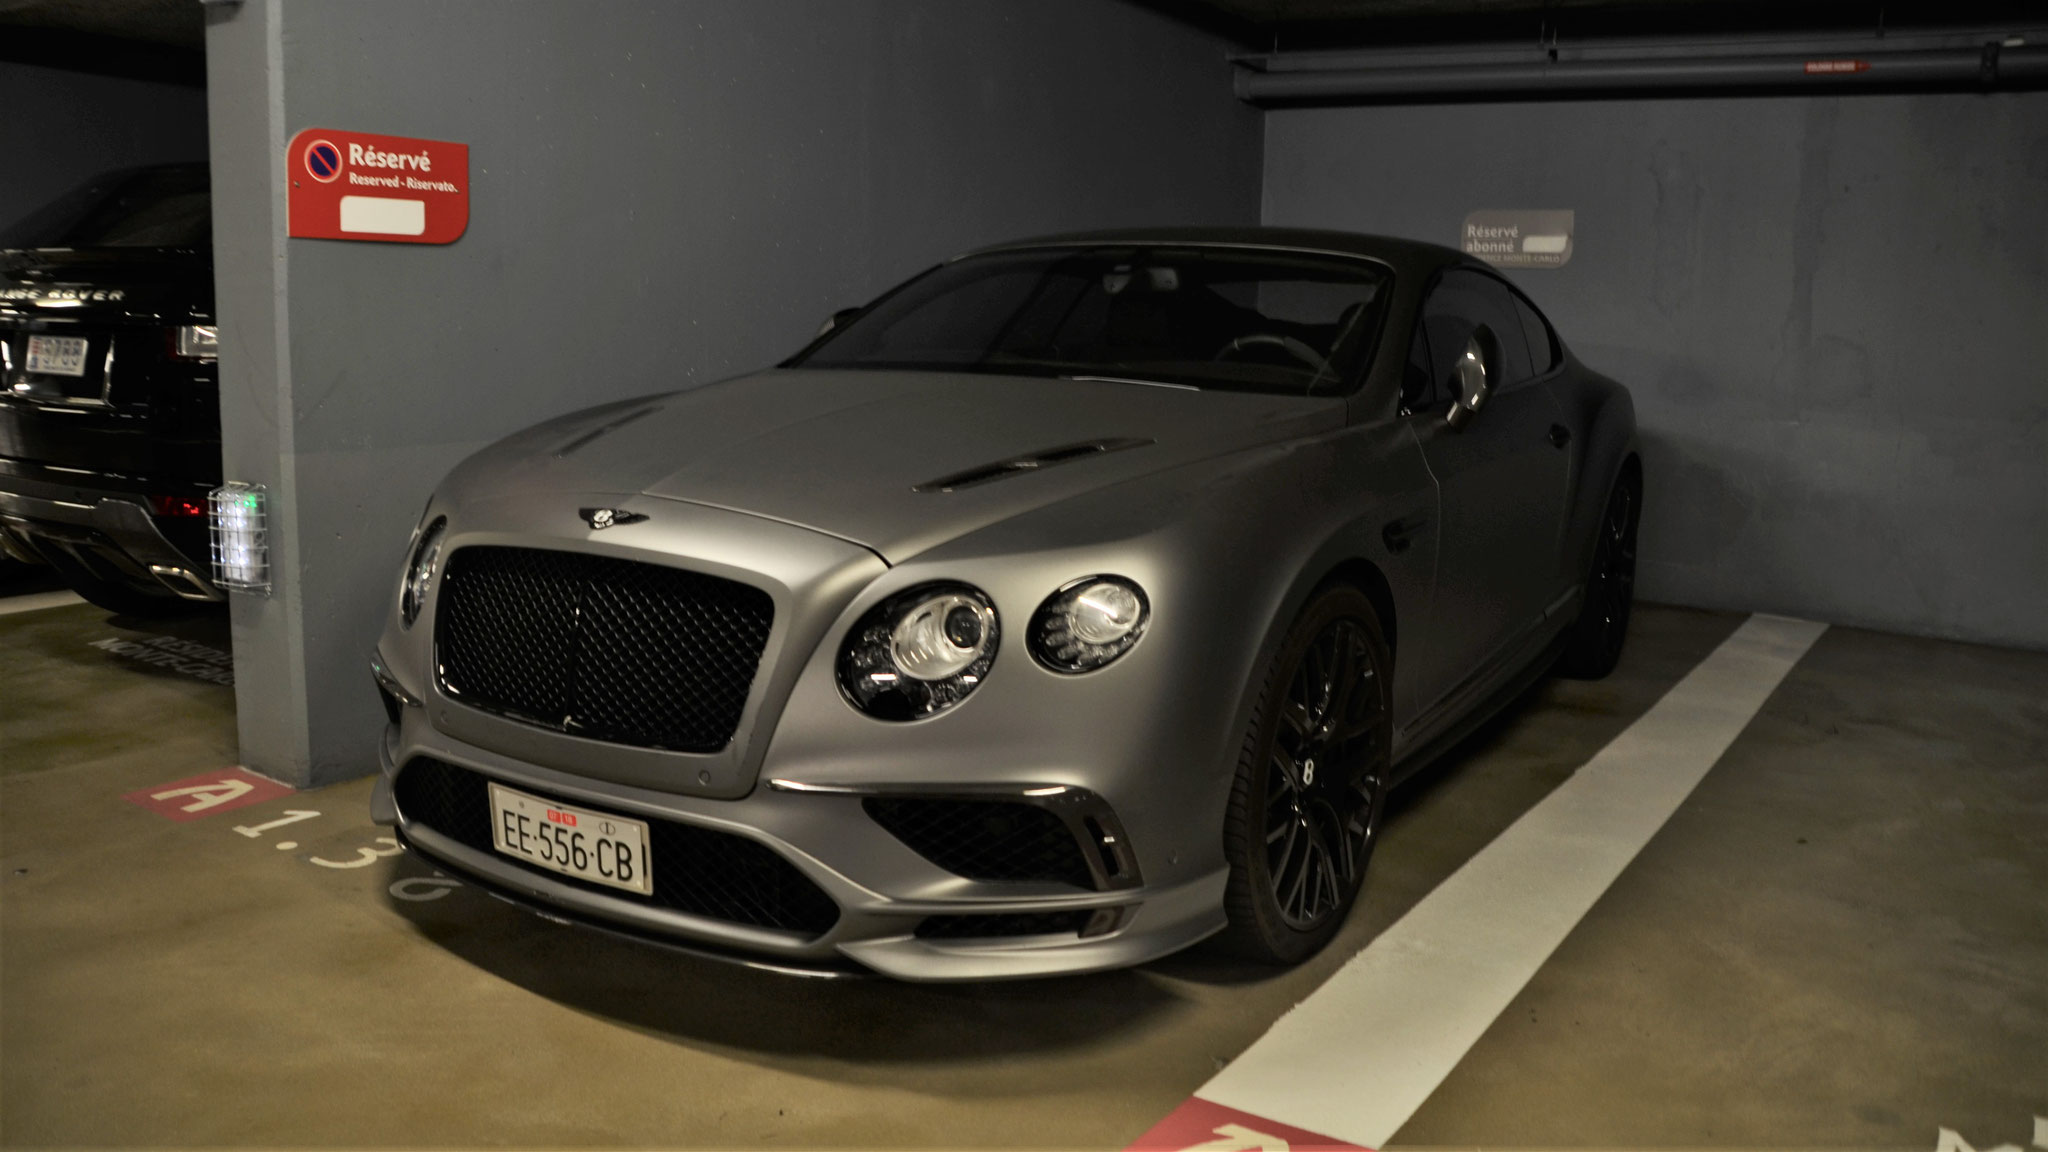 Bentley Continental GTC Supersports - EE-556-CB (ITA)